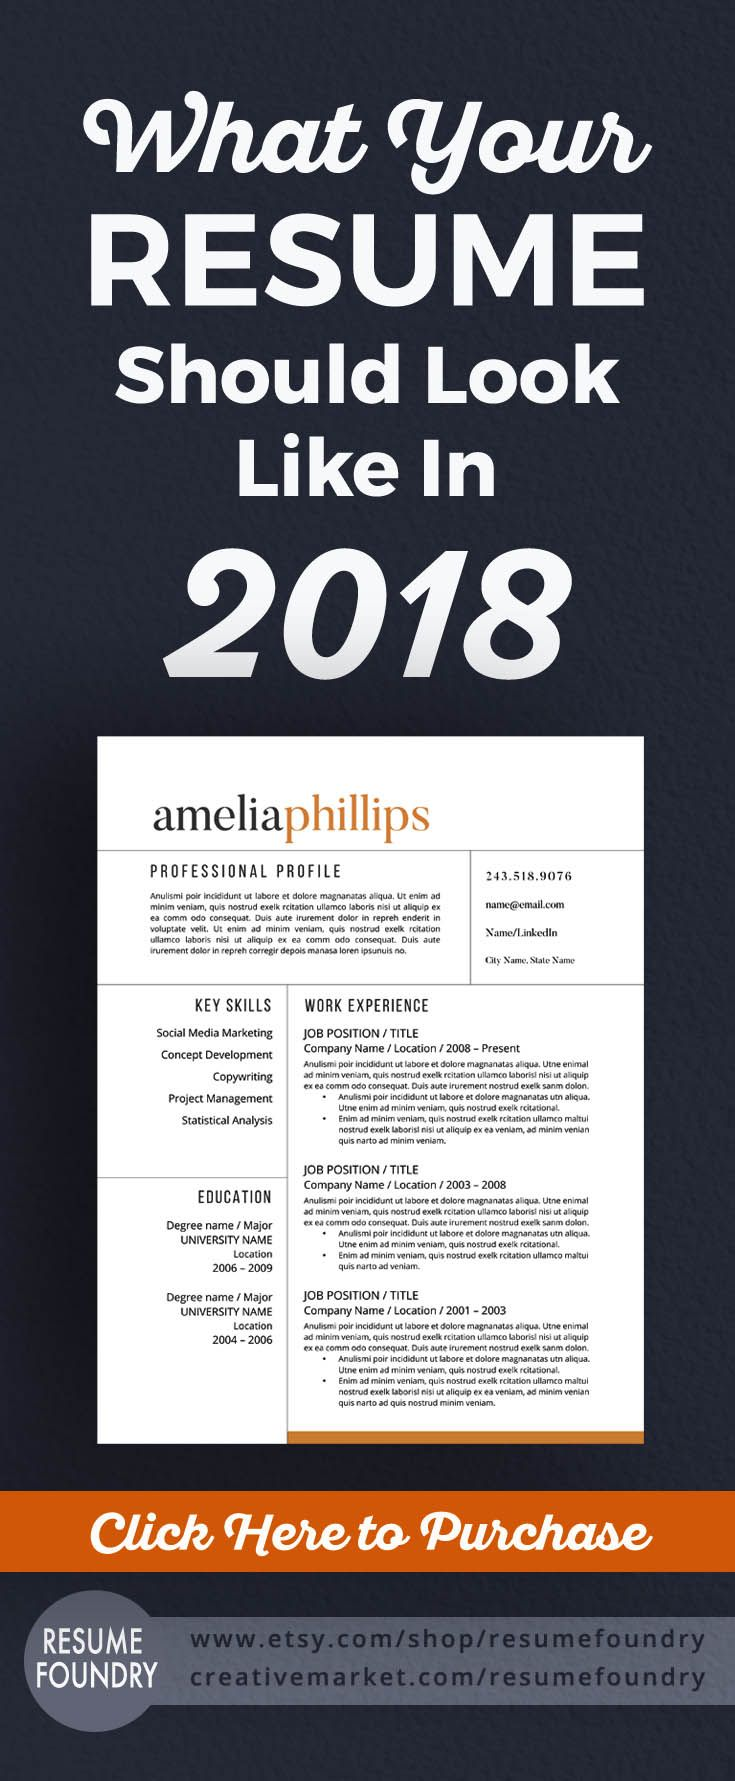 Resume Design Time To Update Your Resume For 2018 We Guarantee